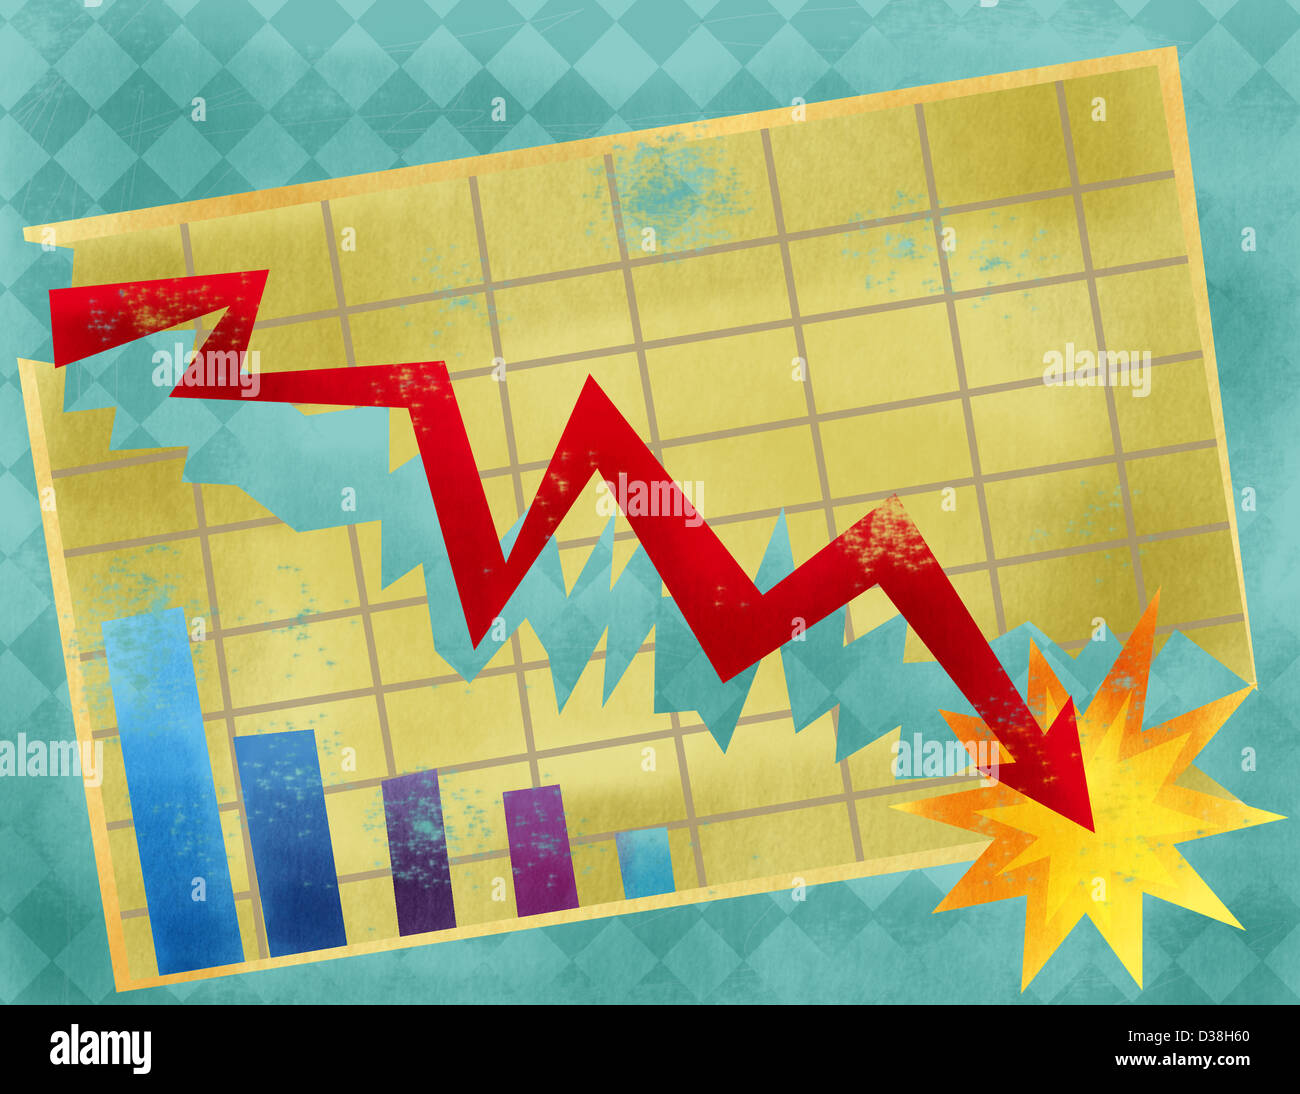 Line graph showing economy crash - Stock Image